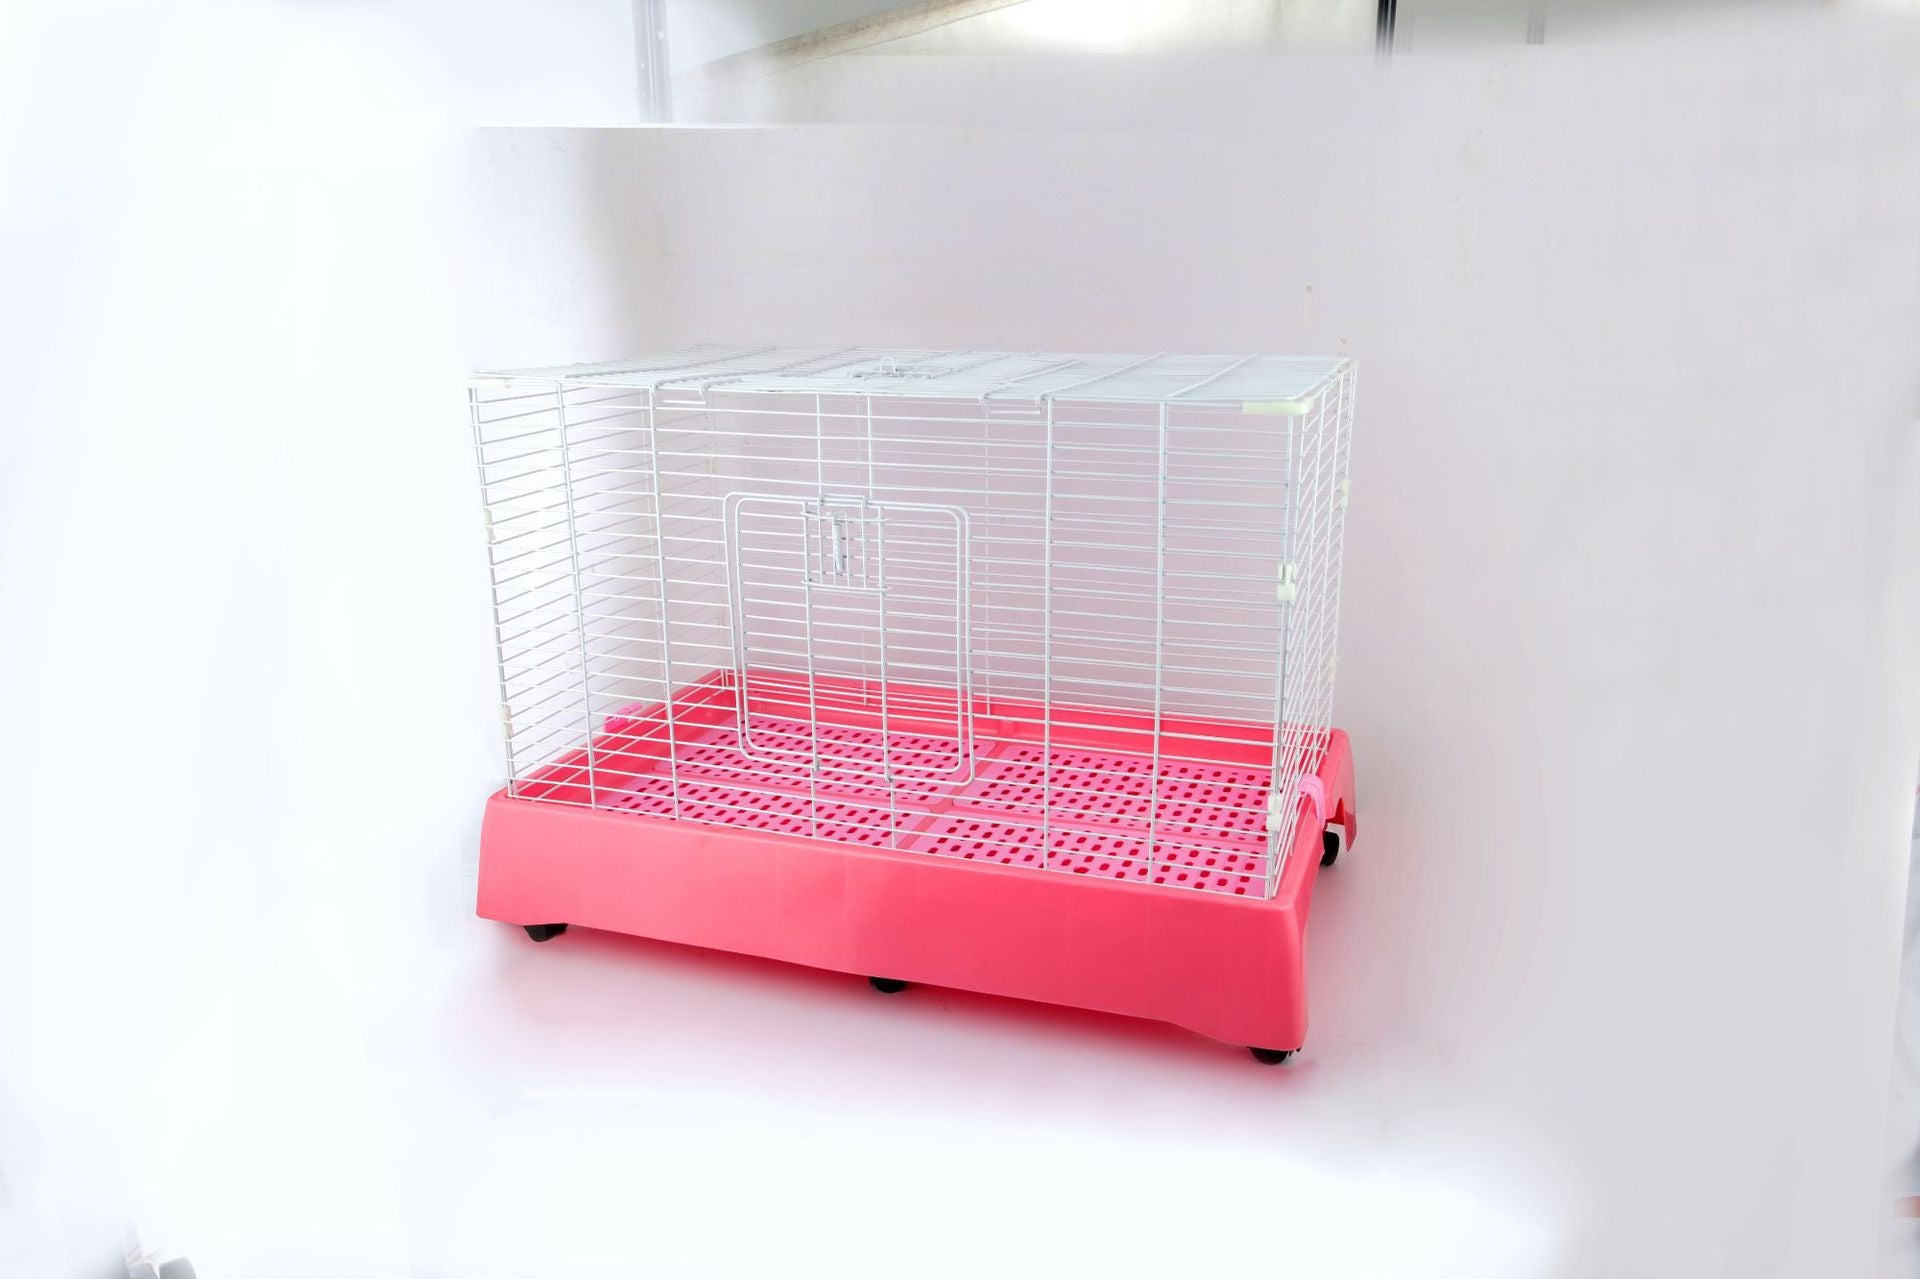 Boer Oversized Drawer Rabbit Cage Anti-leakage design